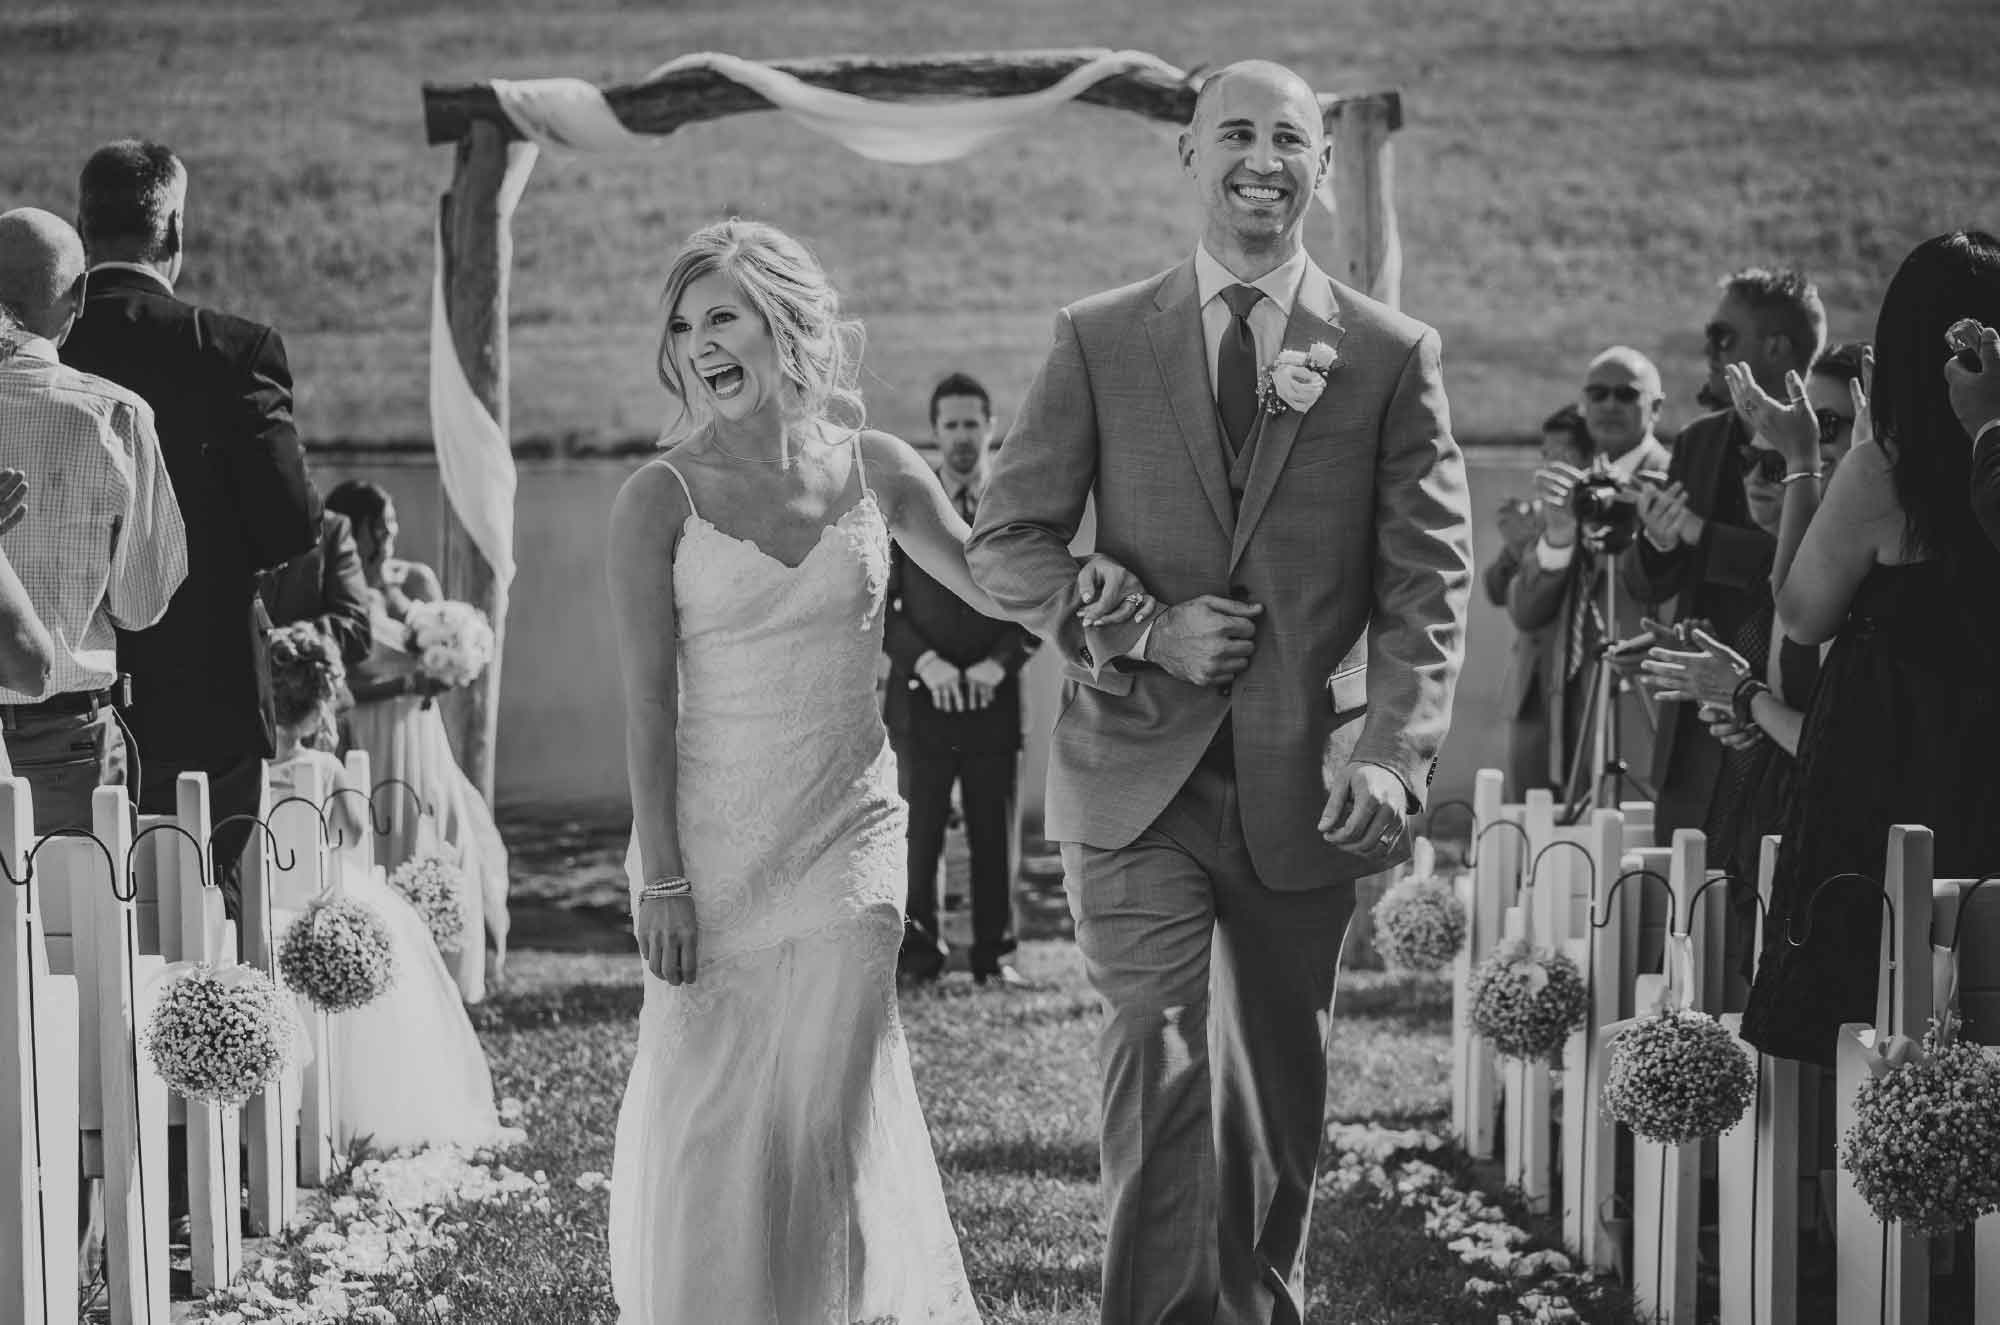 Bride and groom walking up the aisle wedding recessional